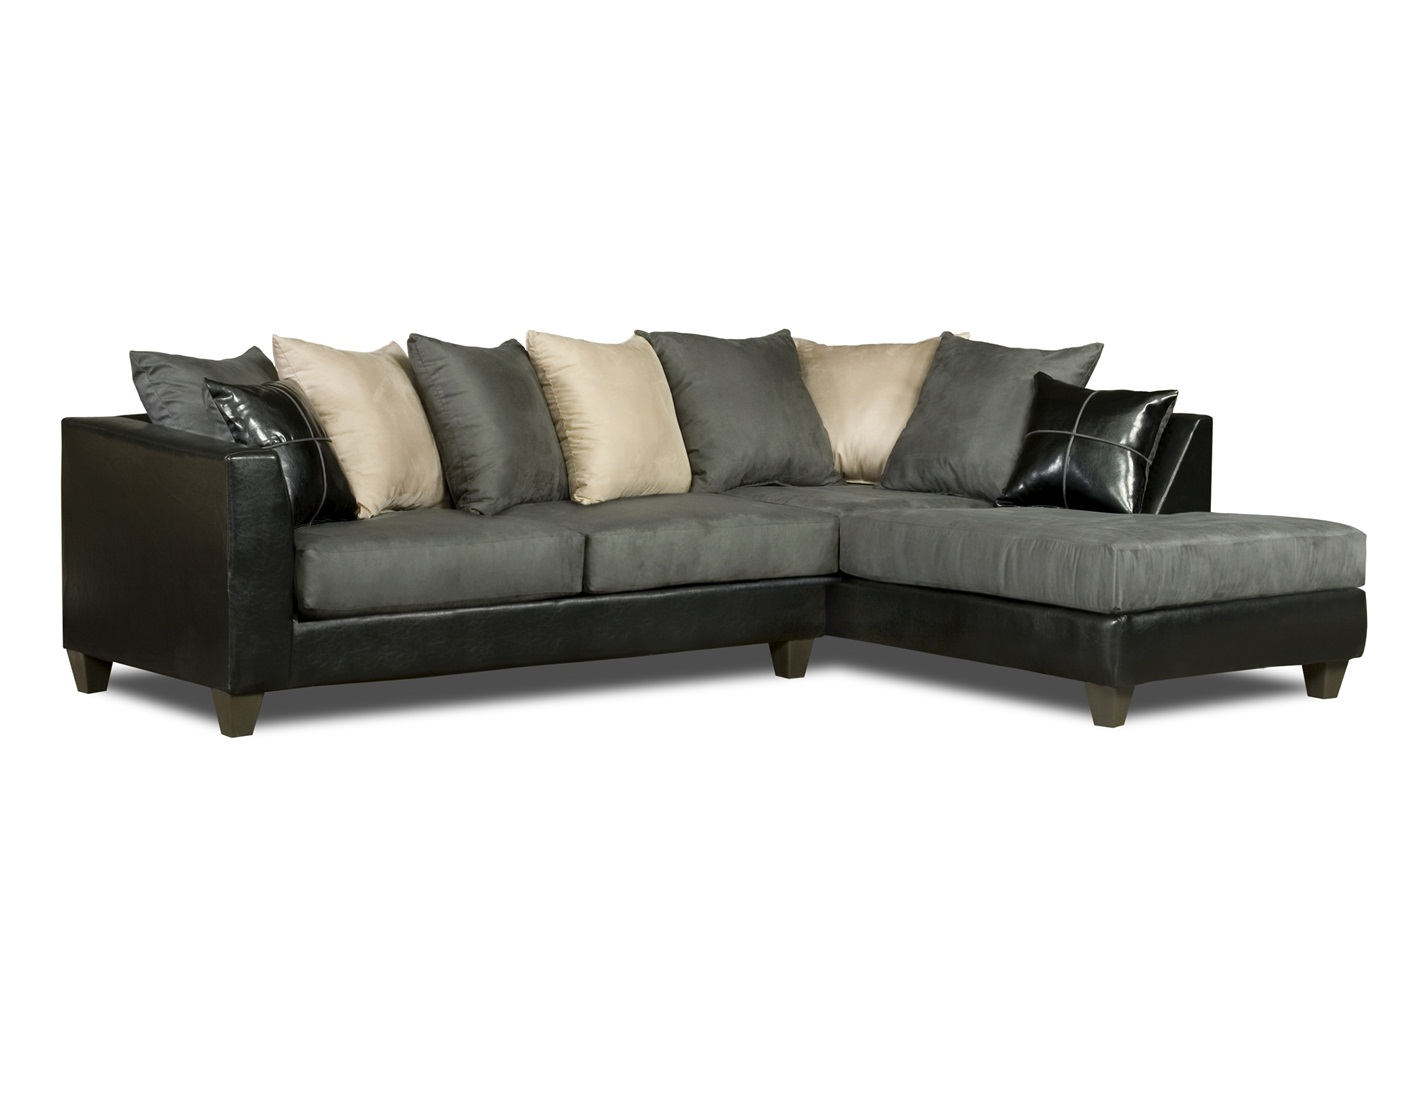 Dark grey microfiber sectional sofa with chaise for Black and grey couch